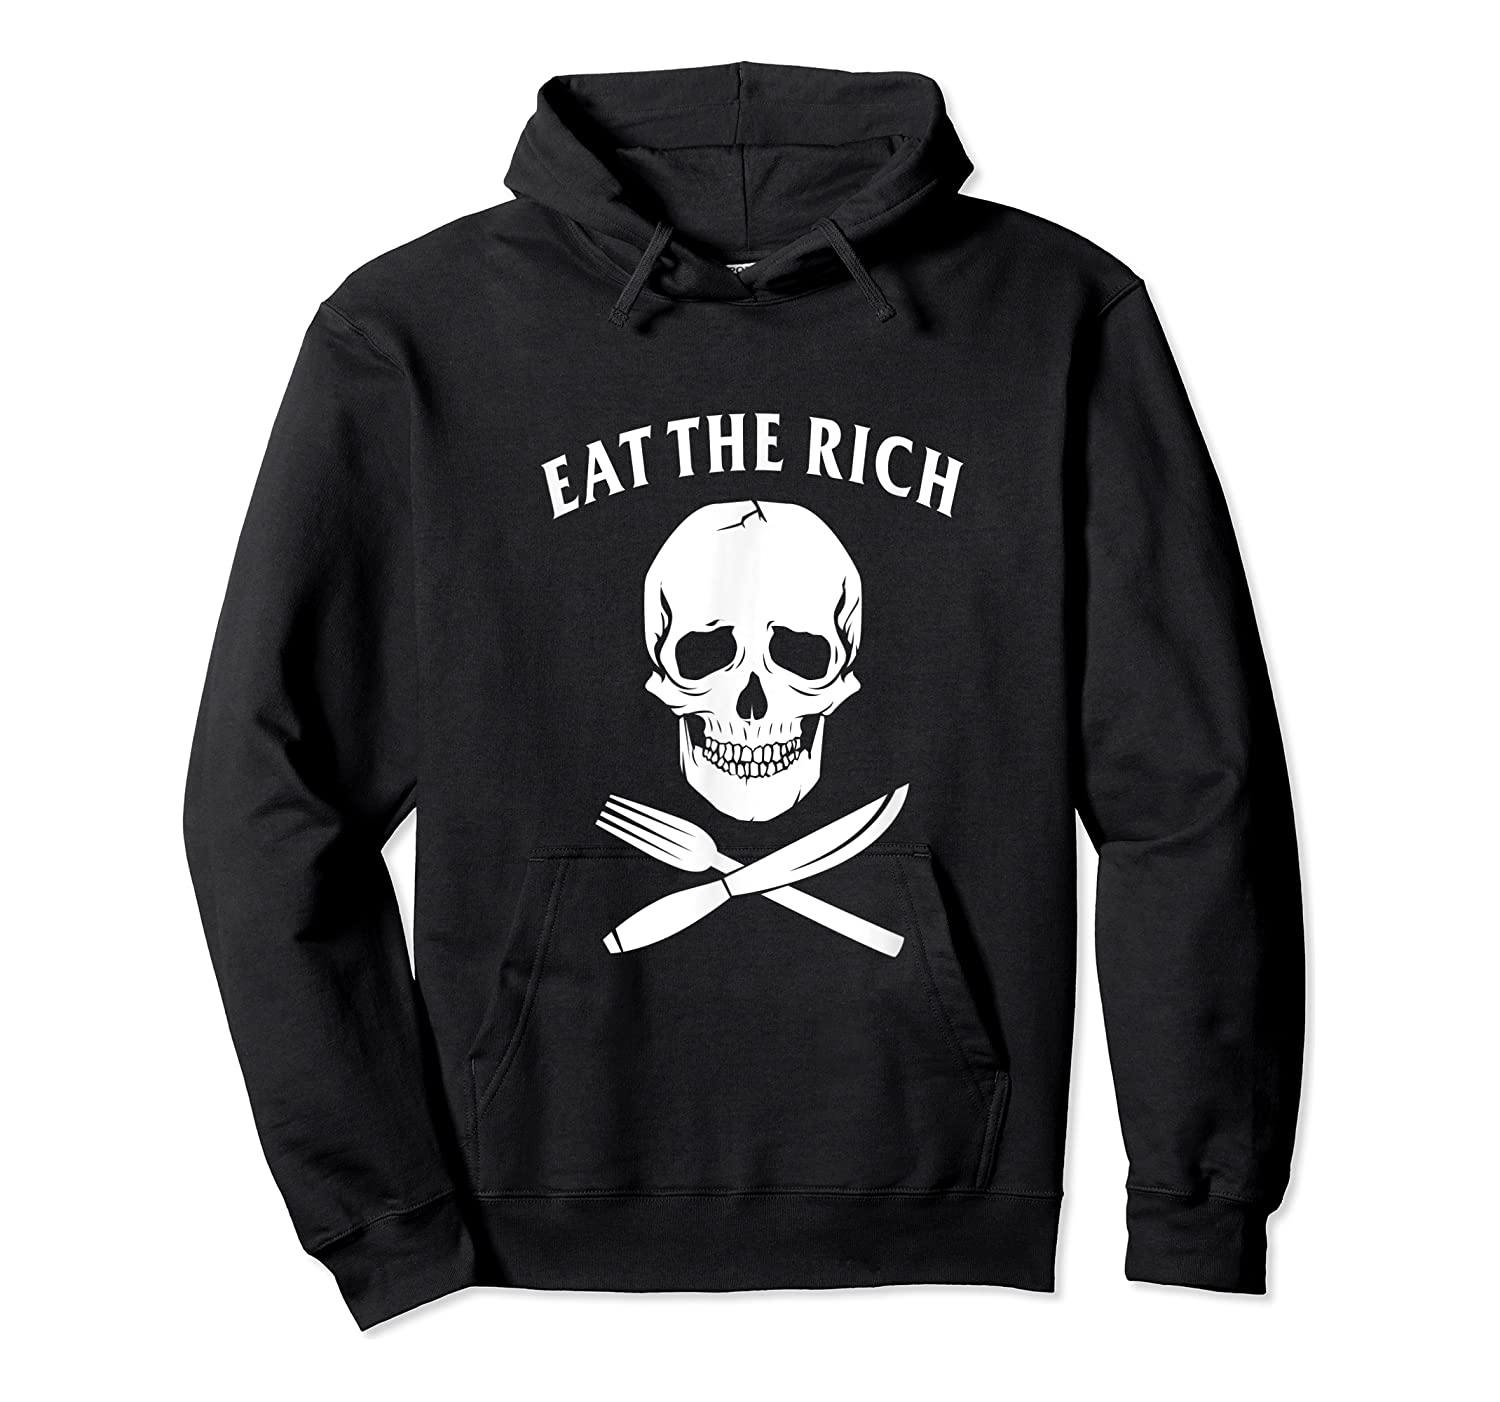 Eat The Rich Protest Socialist Communist Shirts Unisex Pullover Hoodie